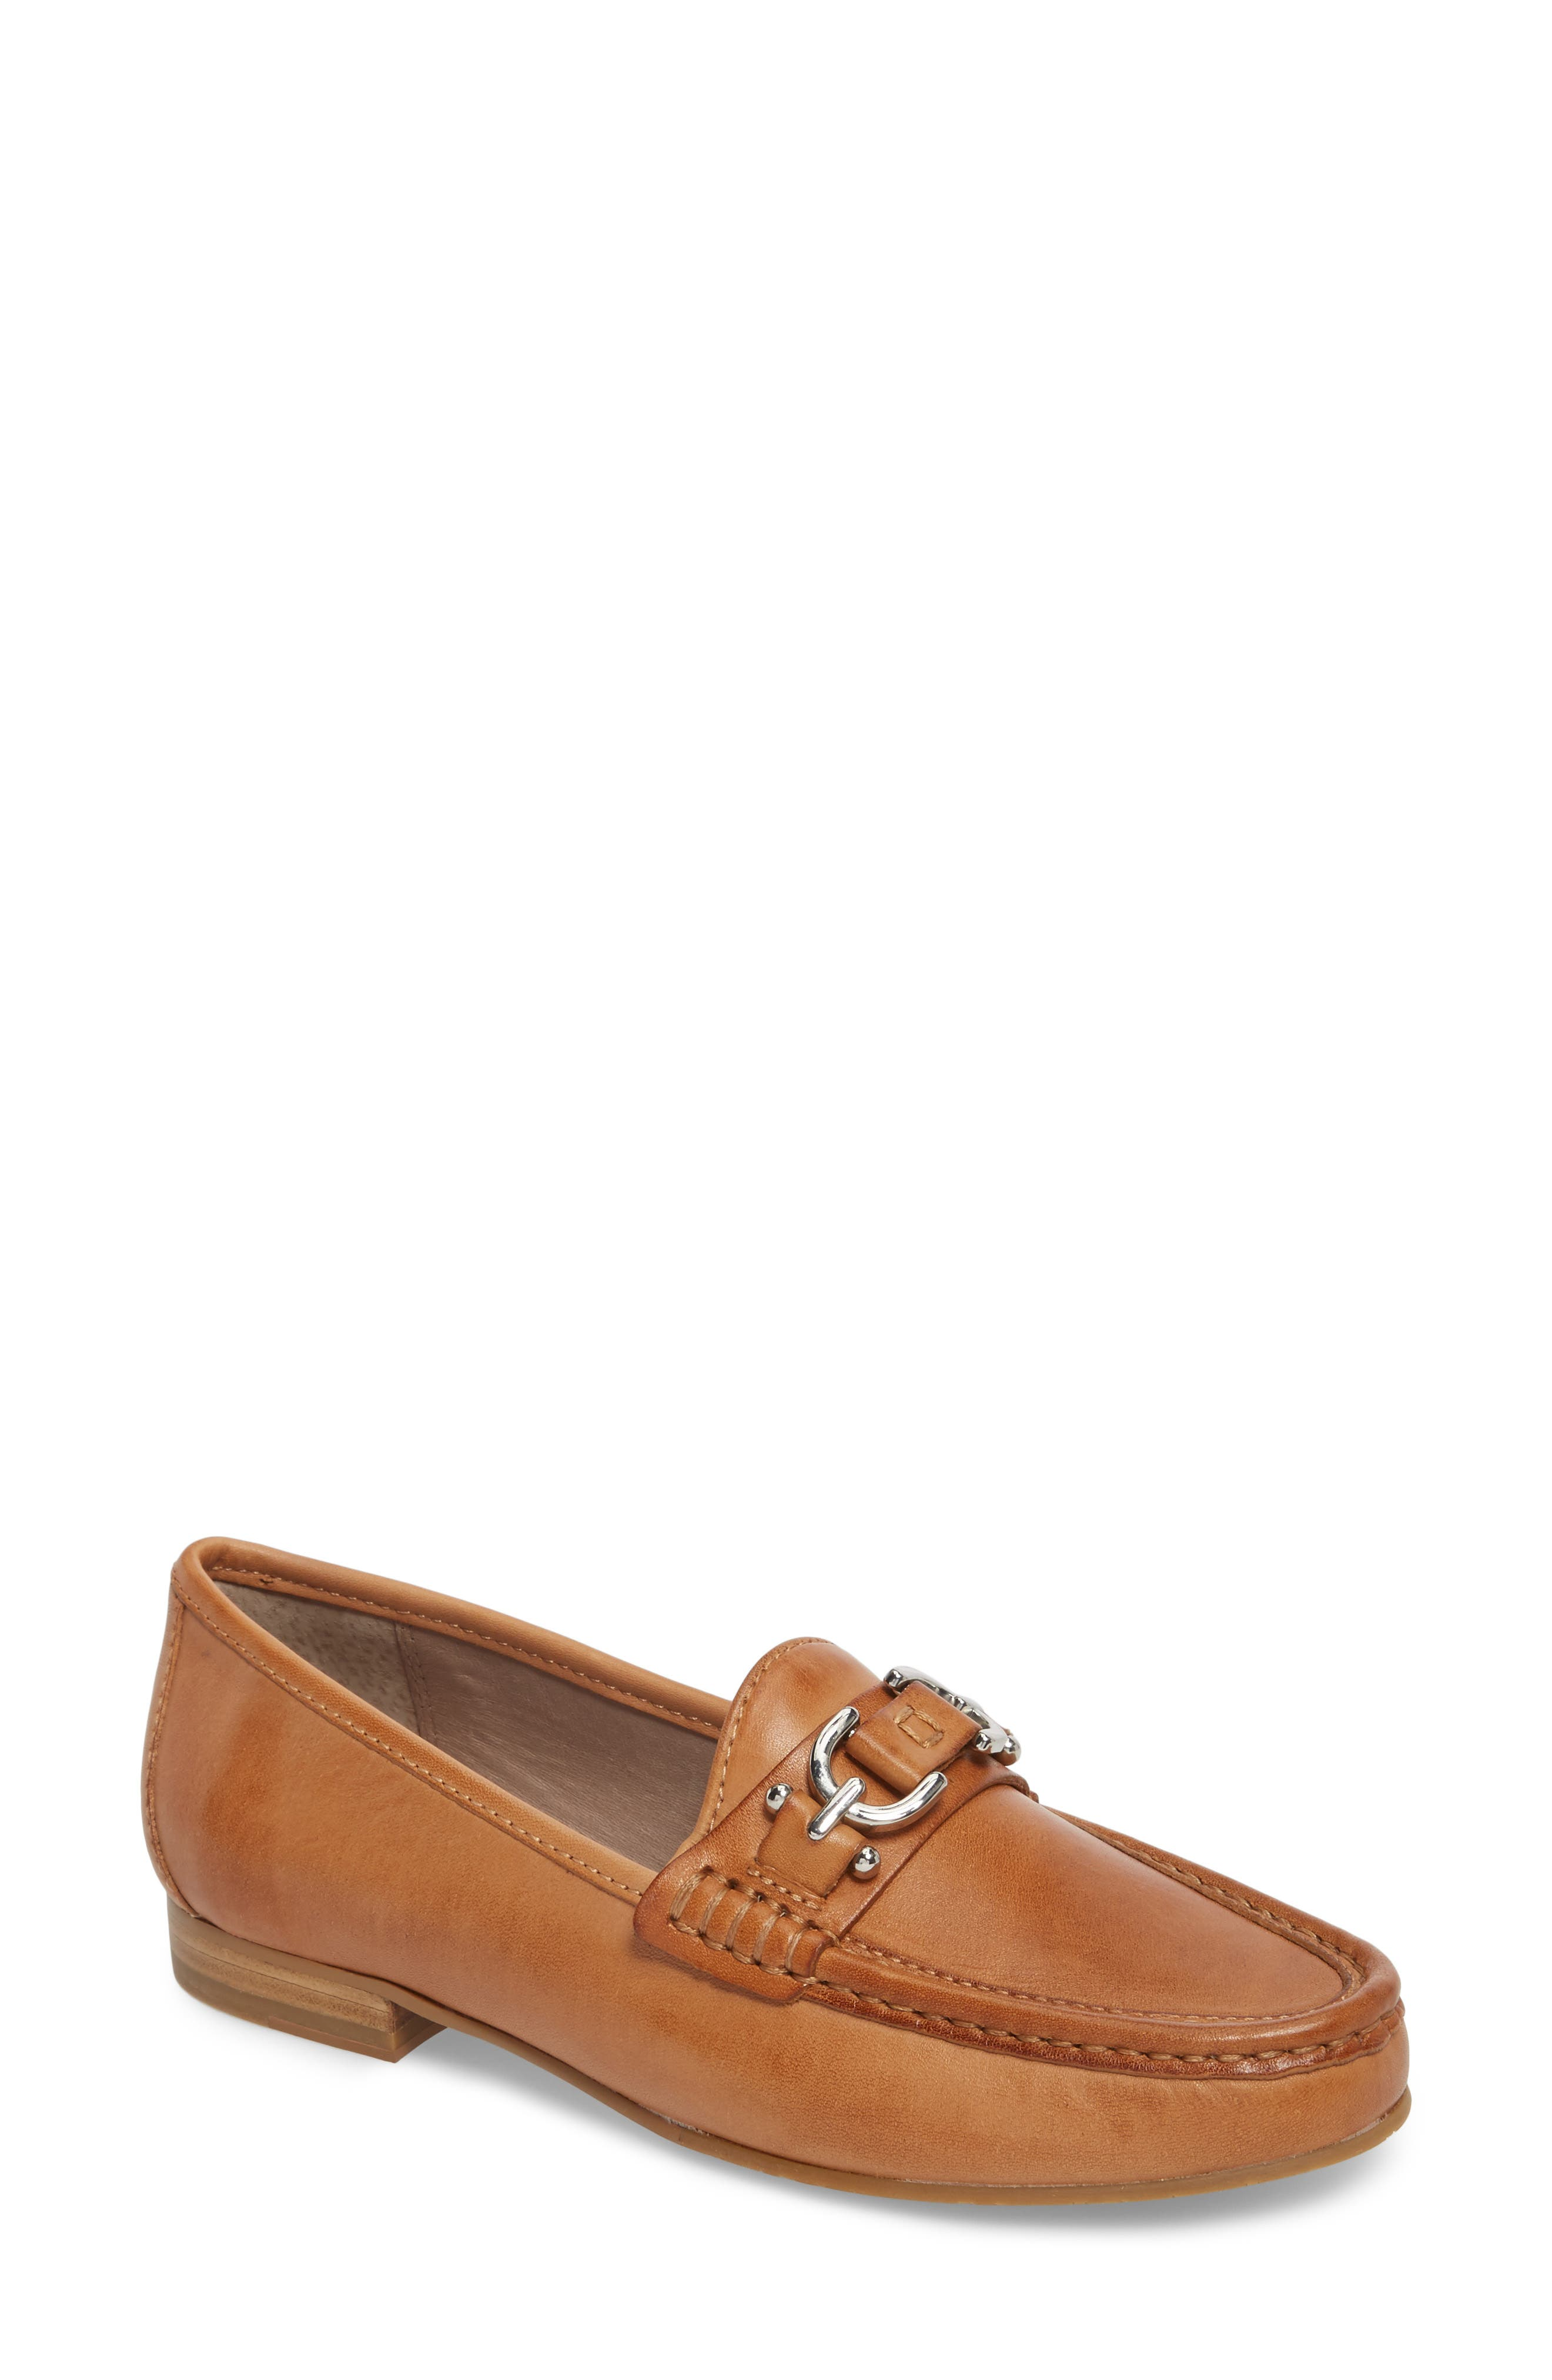 224d1907879 Donald J Pliner Suzy Loafer In Fawn Leather